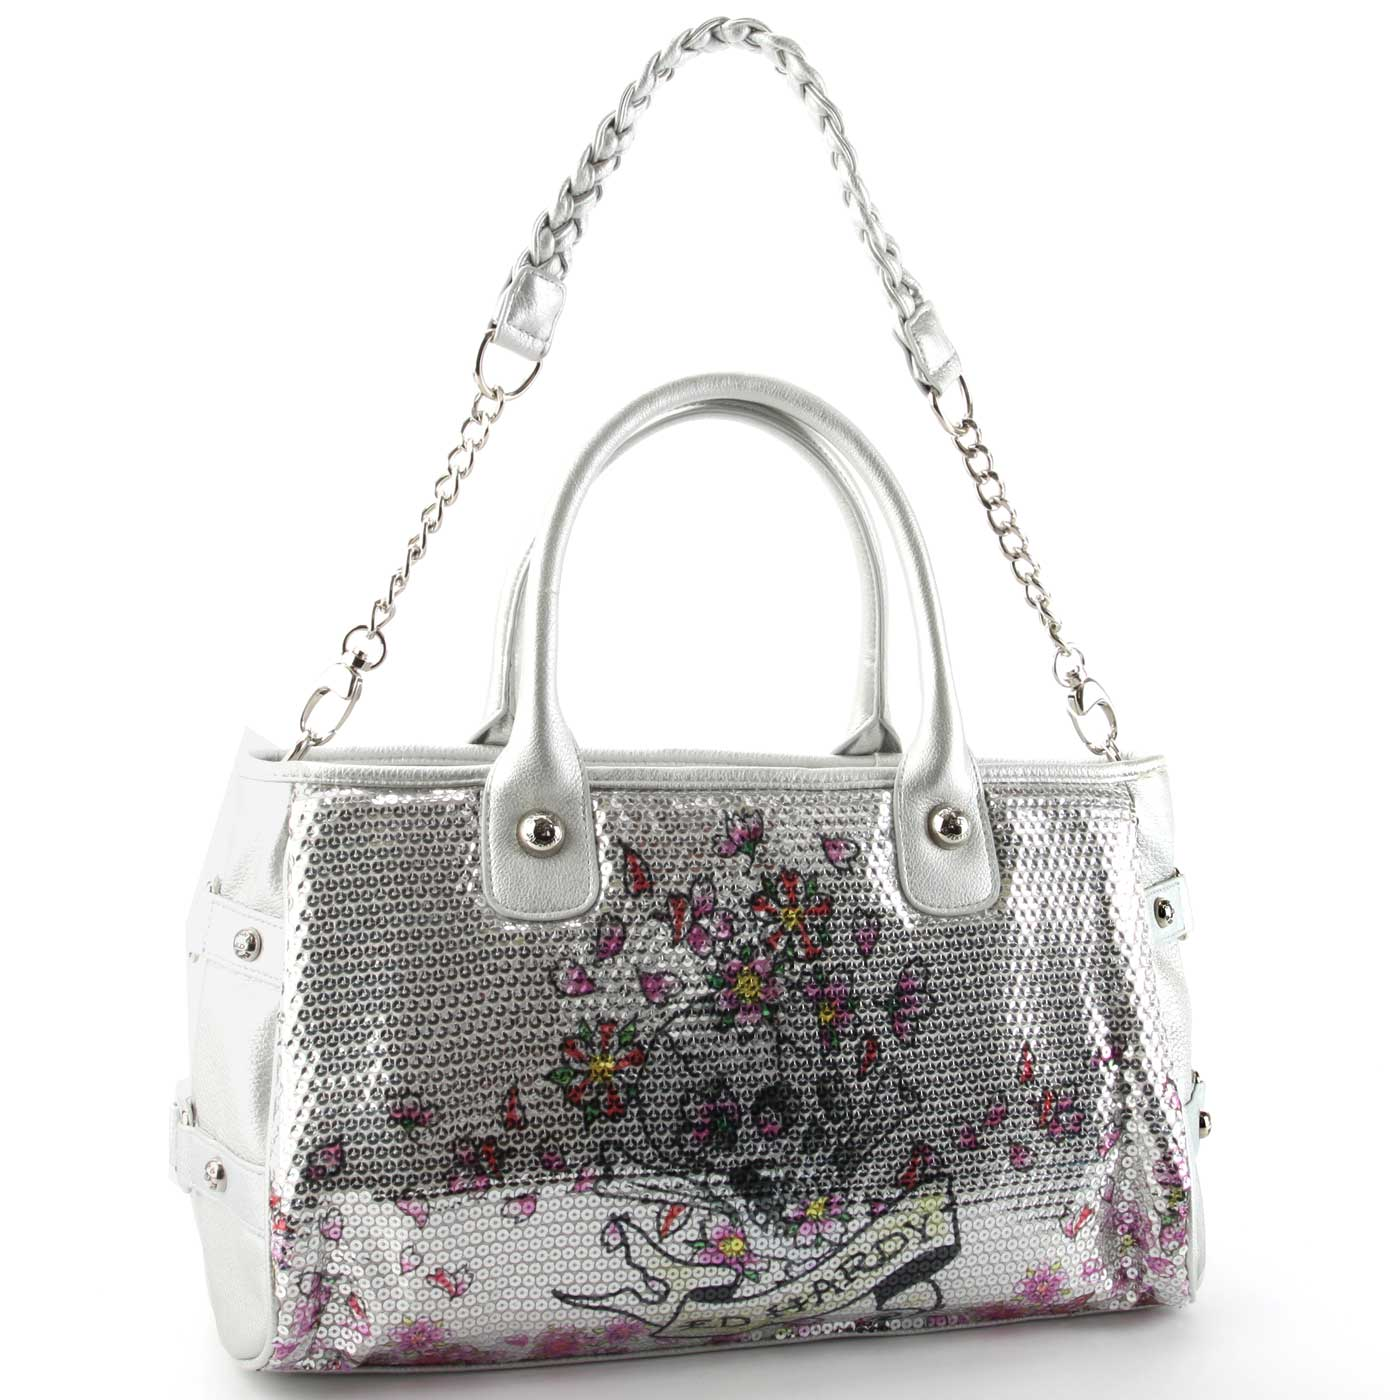 Ed Hardy Treasure Chest Alice Satchel Bag - Silver